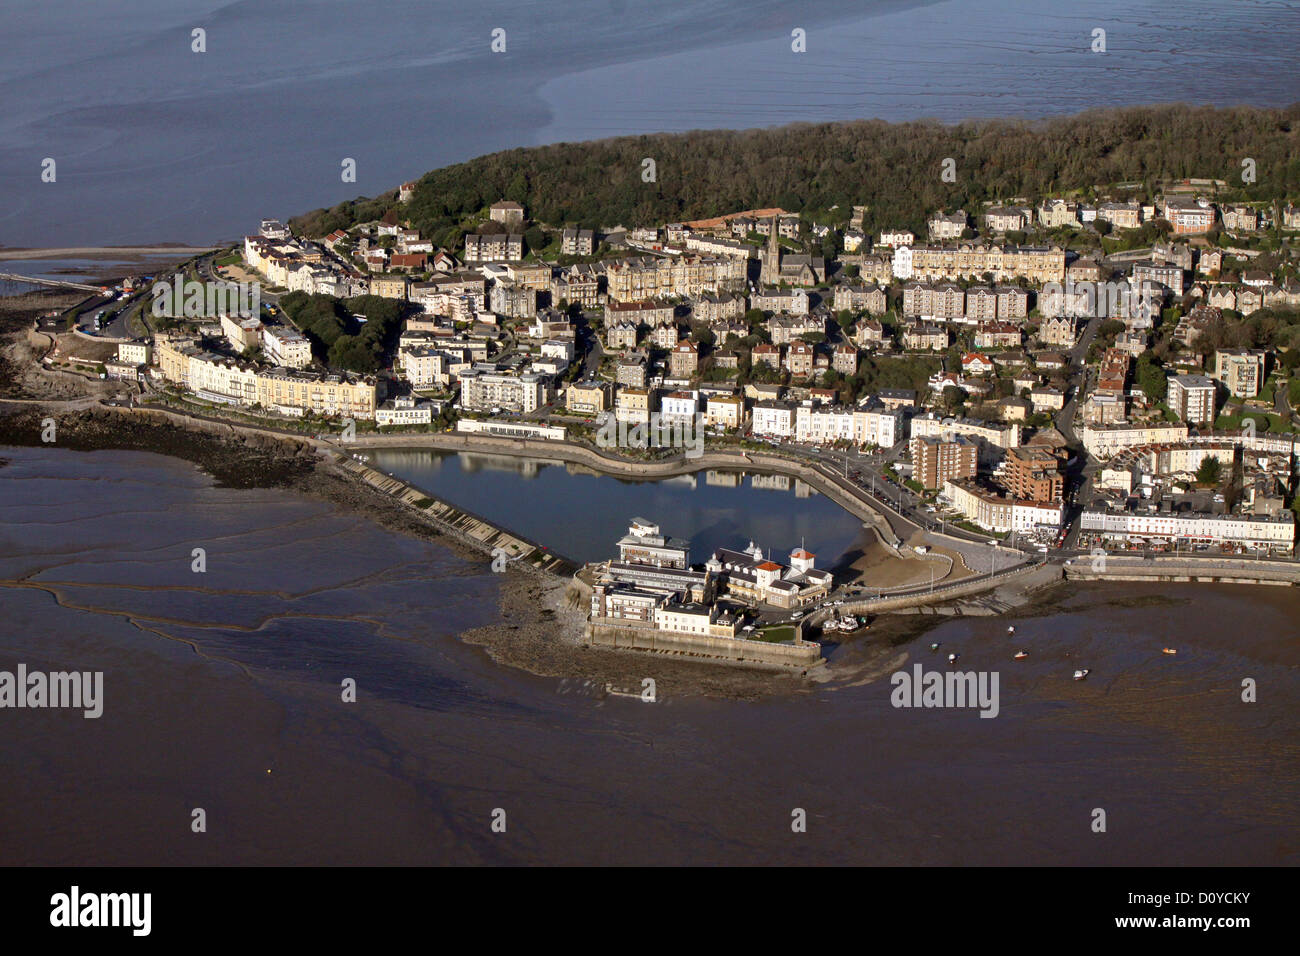 aerial view of Marine Lake at Weston-super-Mare with Weston Bay in the foreground and Worlebury Hill behind - Stock Image